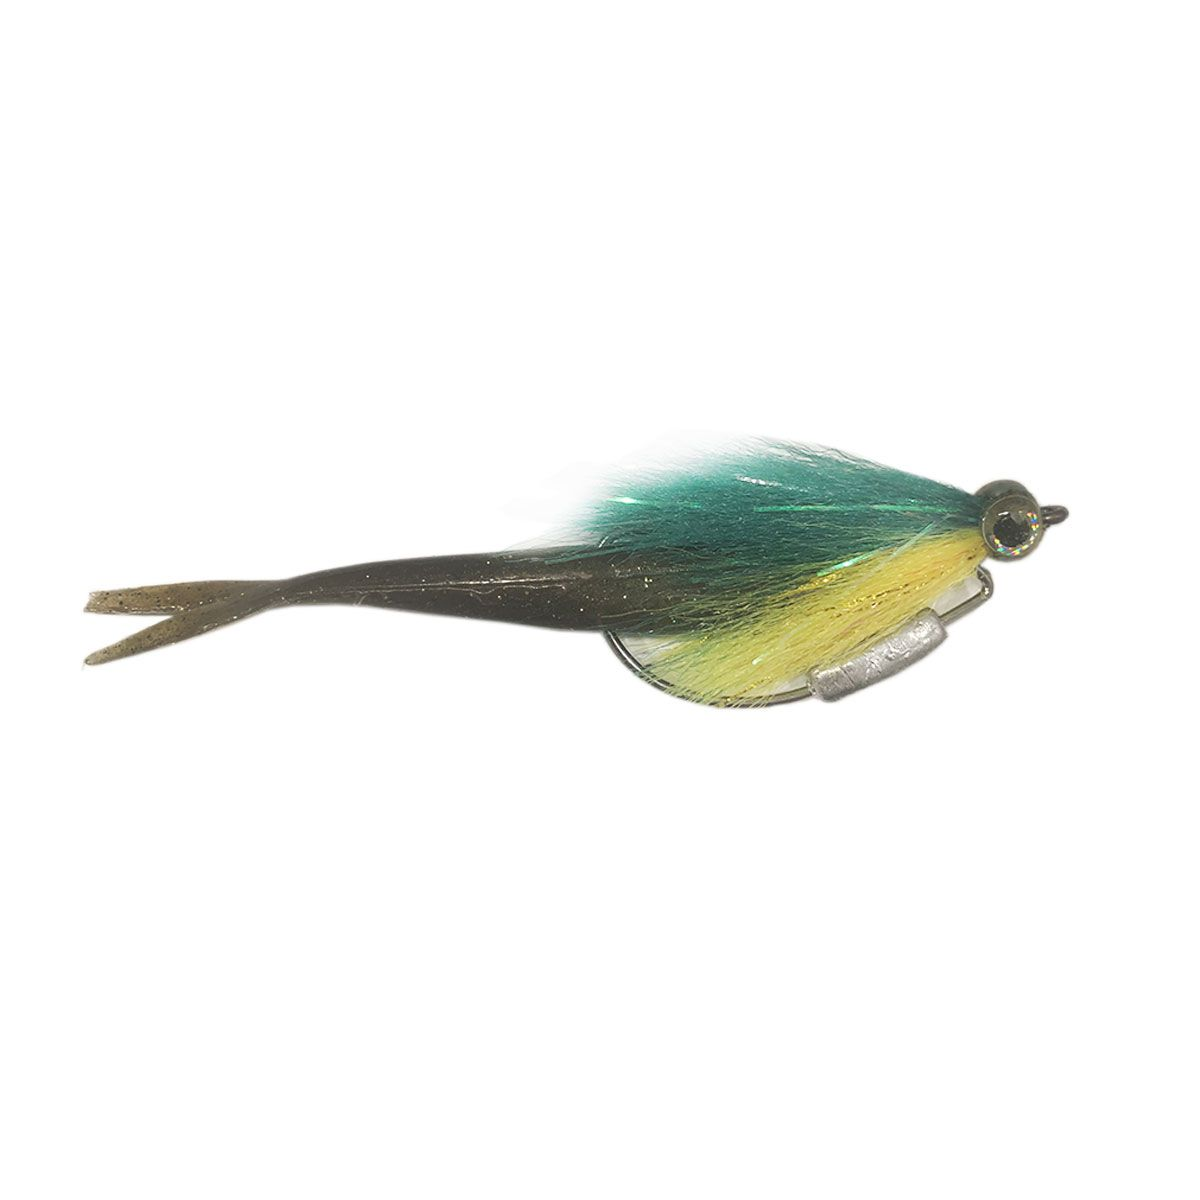 Isca Jig Lure Maker Lastreado Fork Tail 11g 4/0